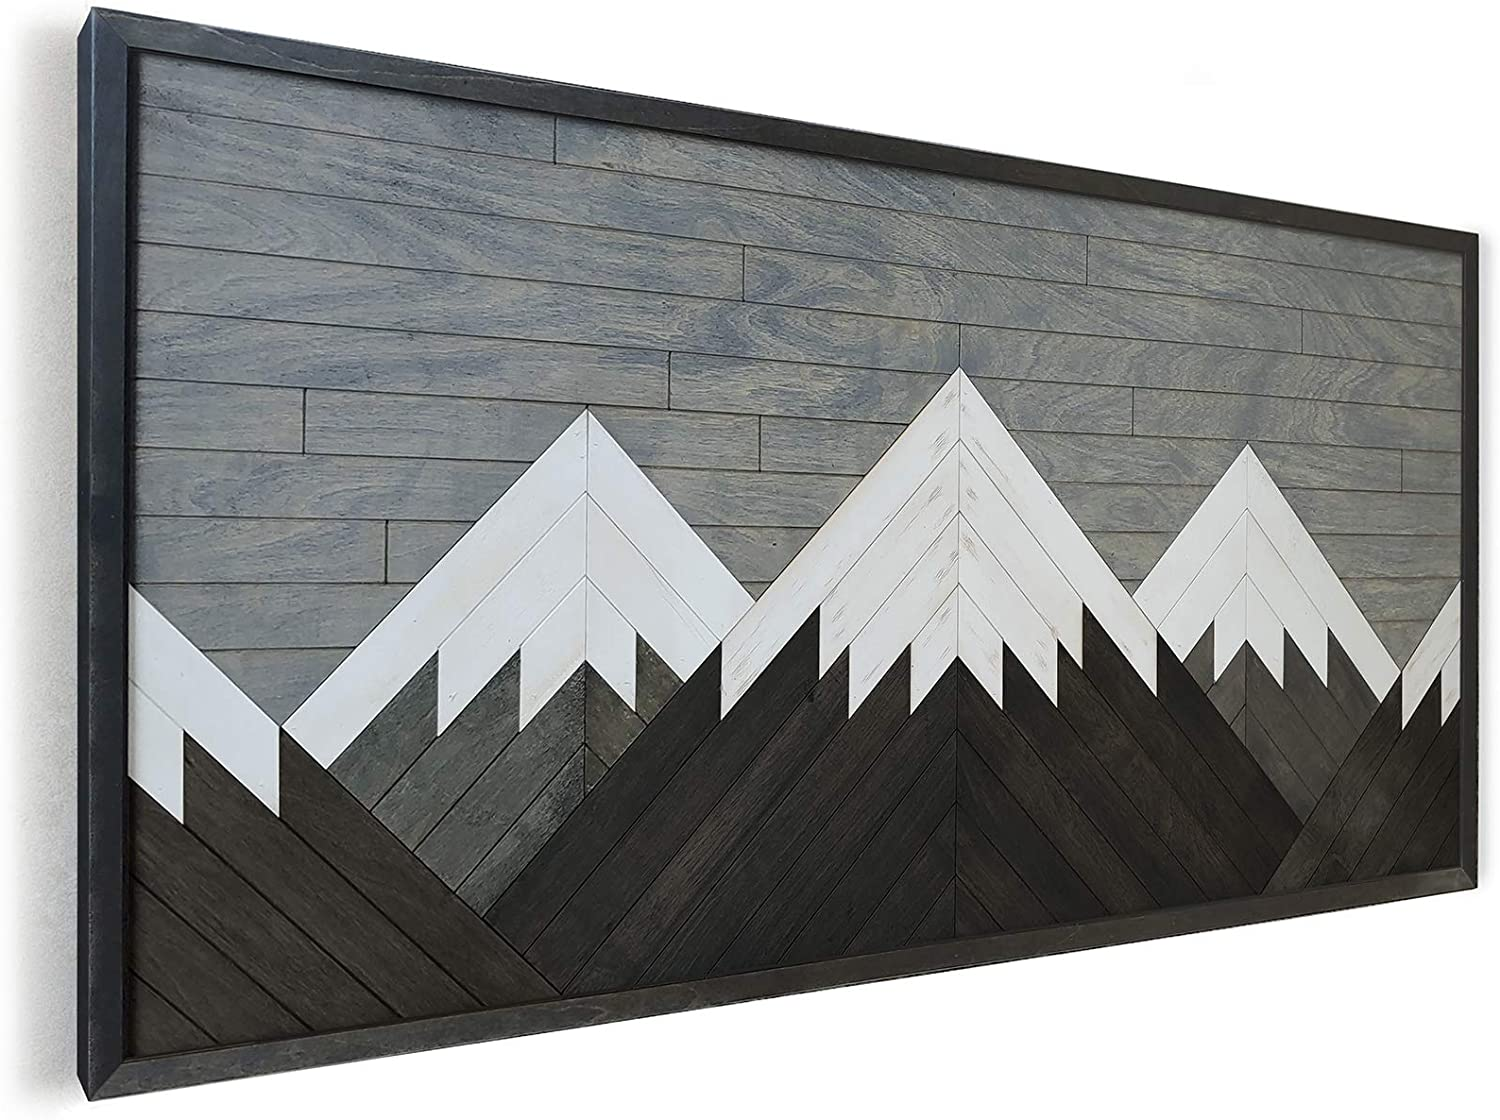 Other Furniture Mountain Wall Art for Living Room- Reclaimed Wood Panel Wall Art whitea Peak